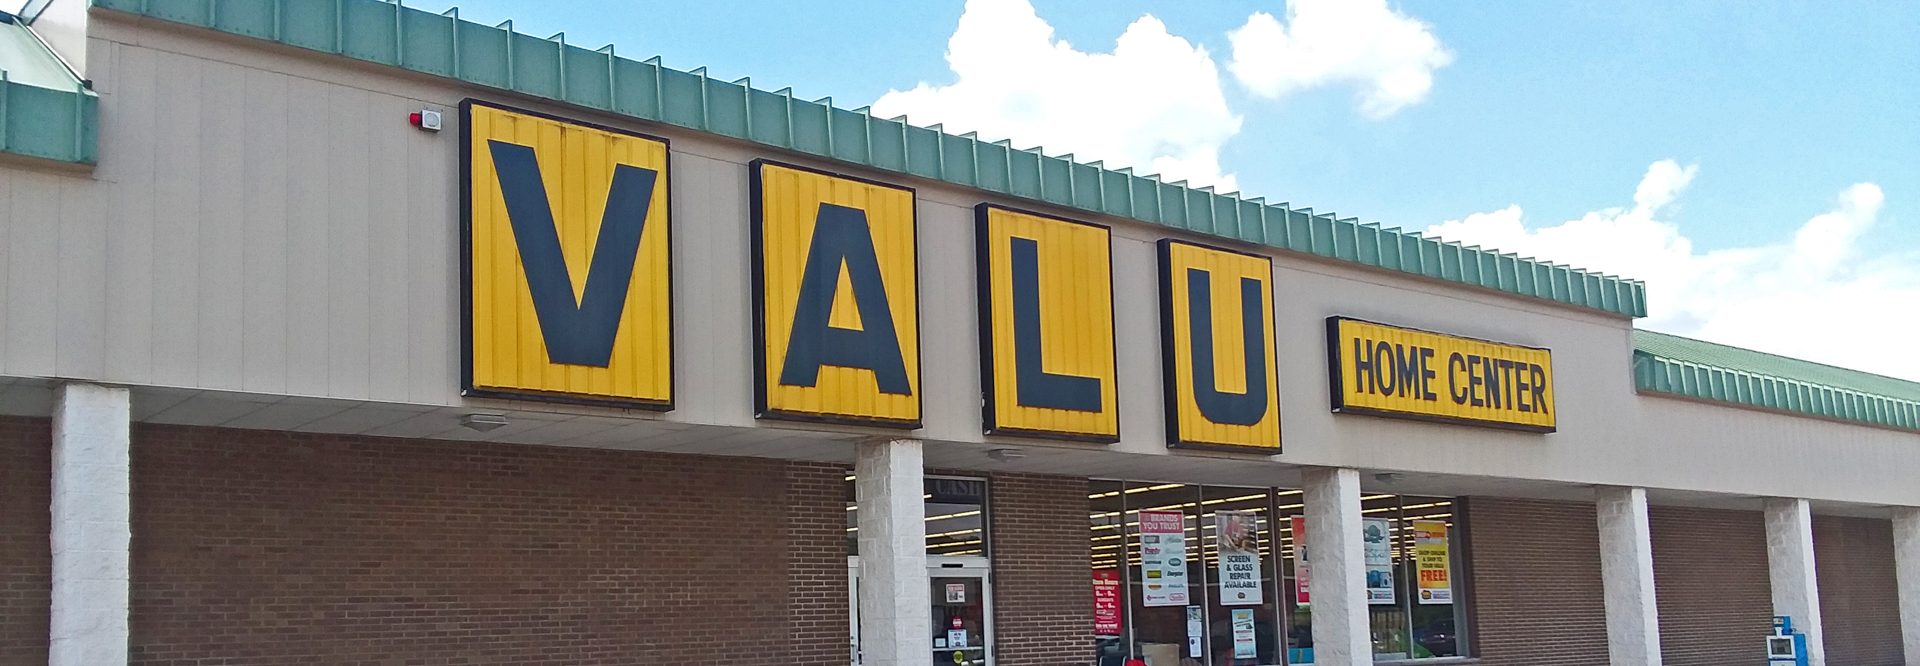 Valu Home Centers #36 in Meadville, PA